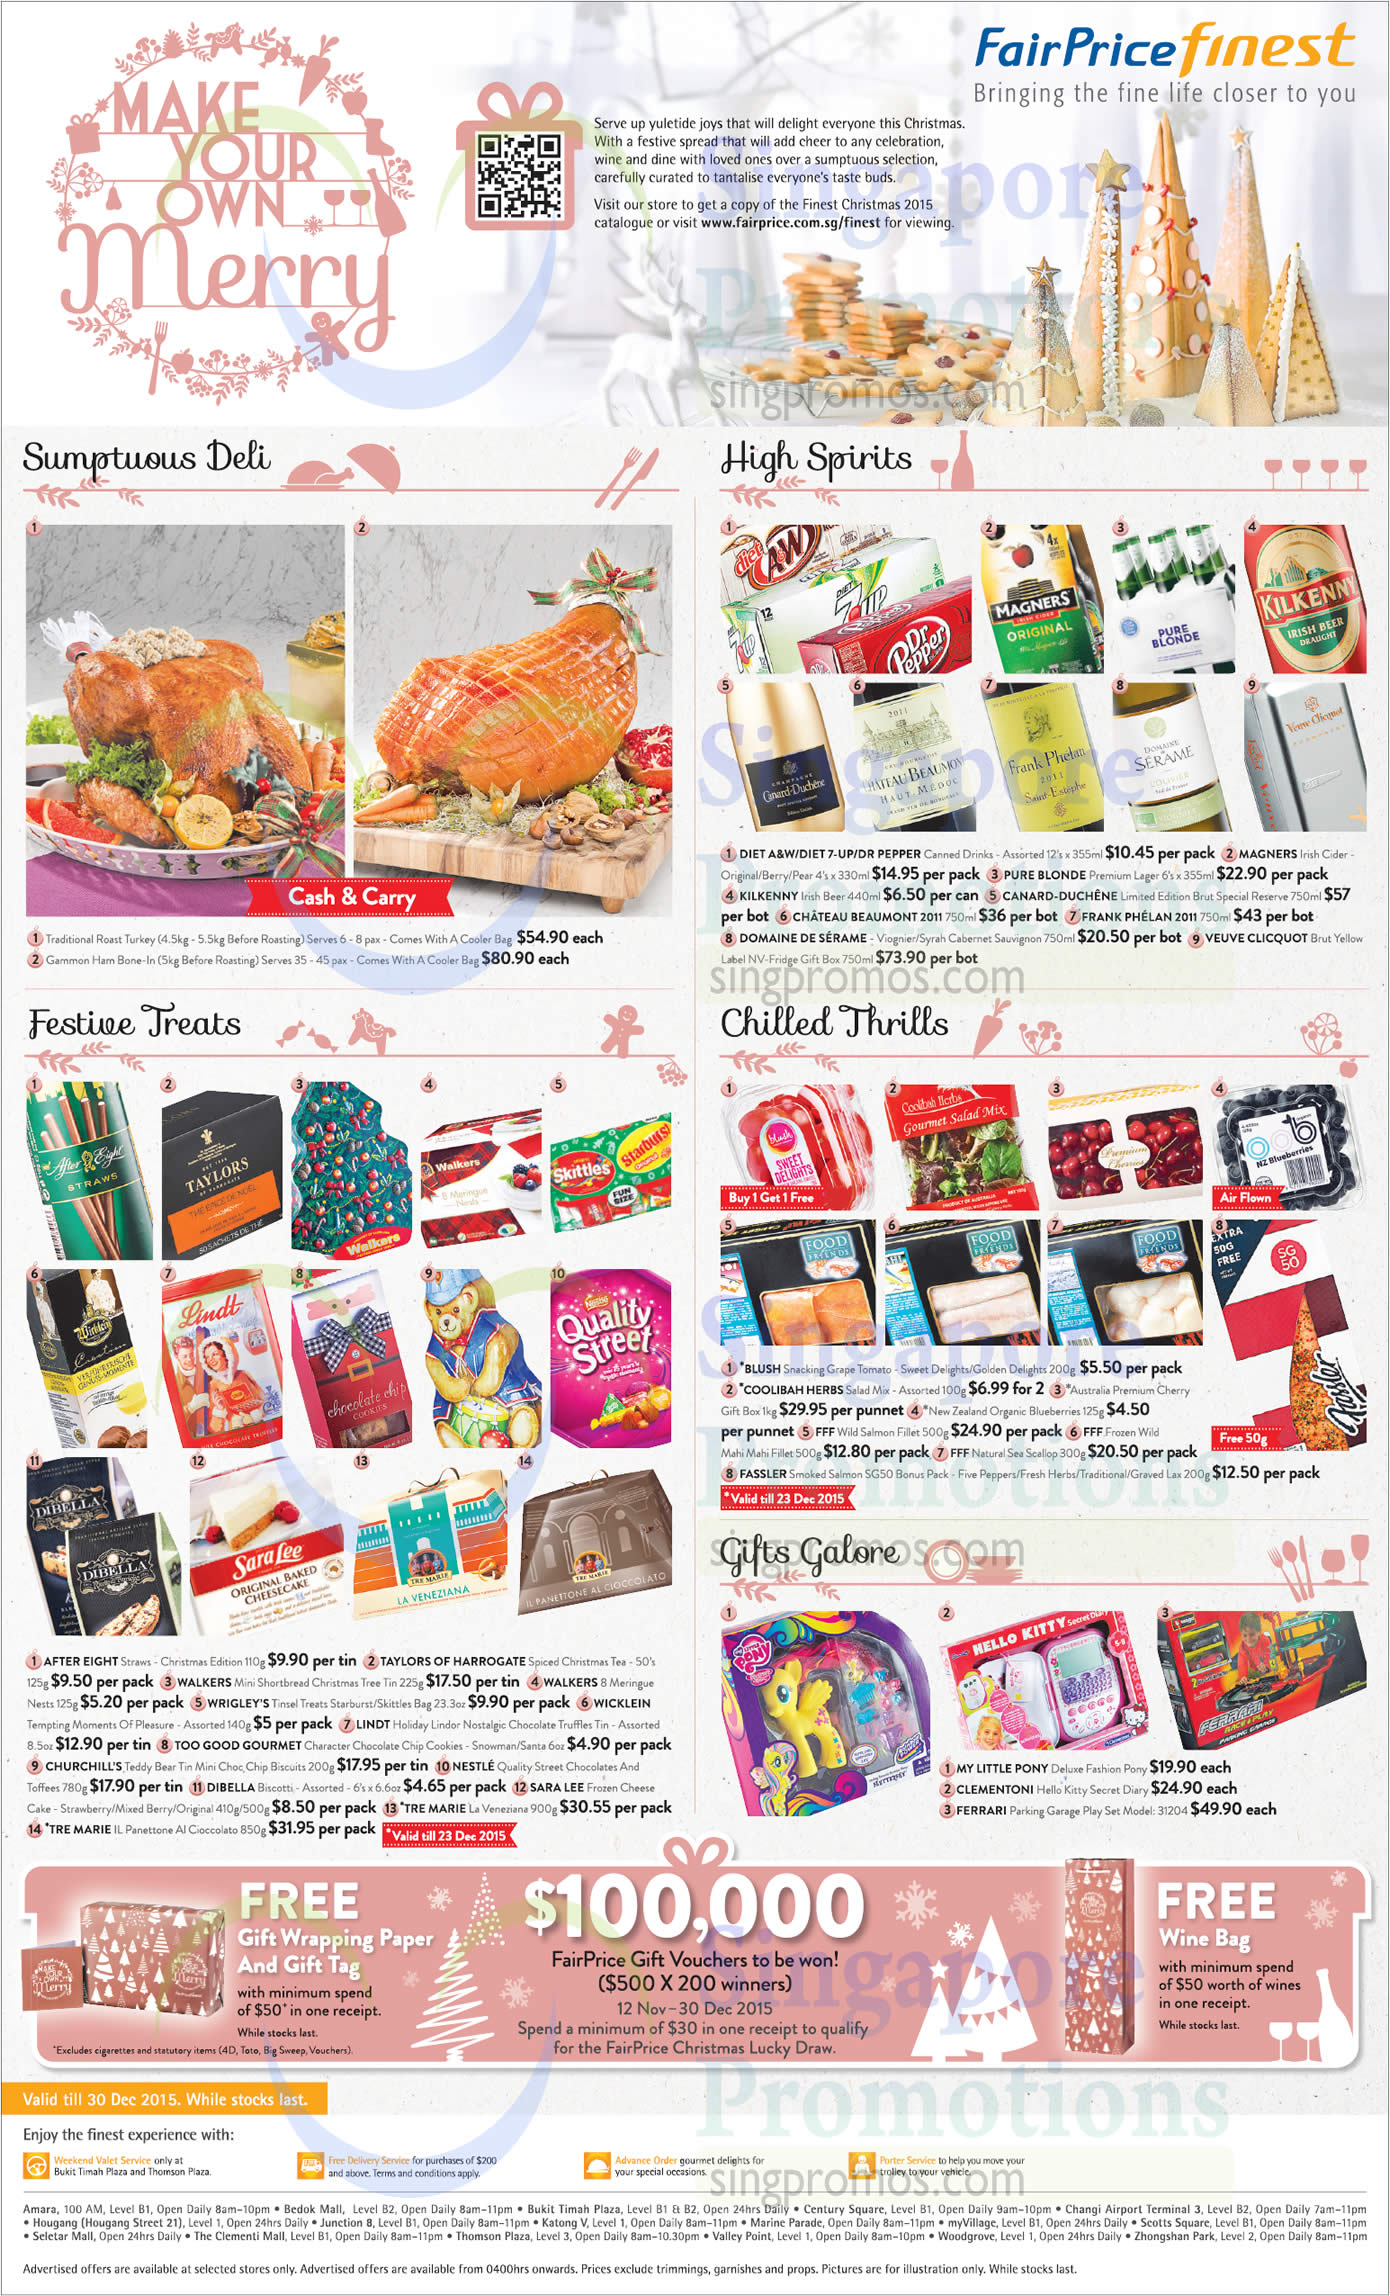 Ntuc Christmas Catalogue 2020 NTUC Christmas Catalogue (Sep 2020) | SINGPromos.com